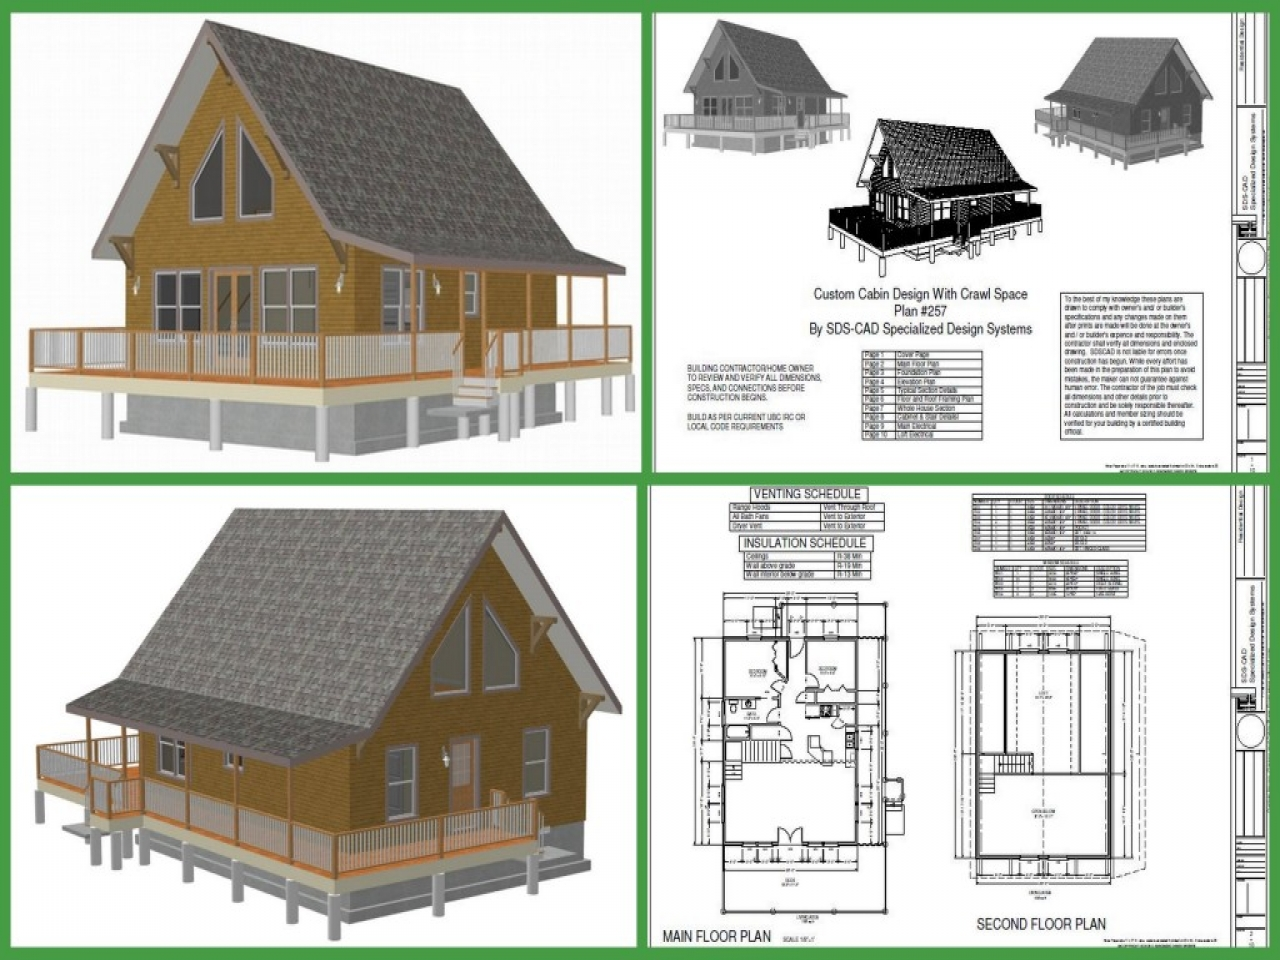 Cabin plan h257 1000 sq ft custom cabin design with crawl for Custom cabin plans